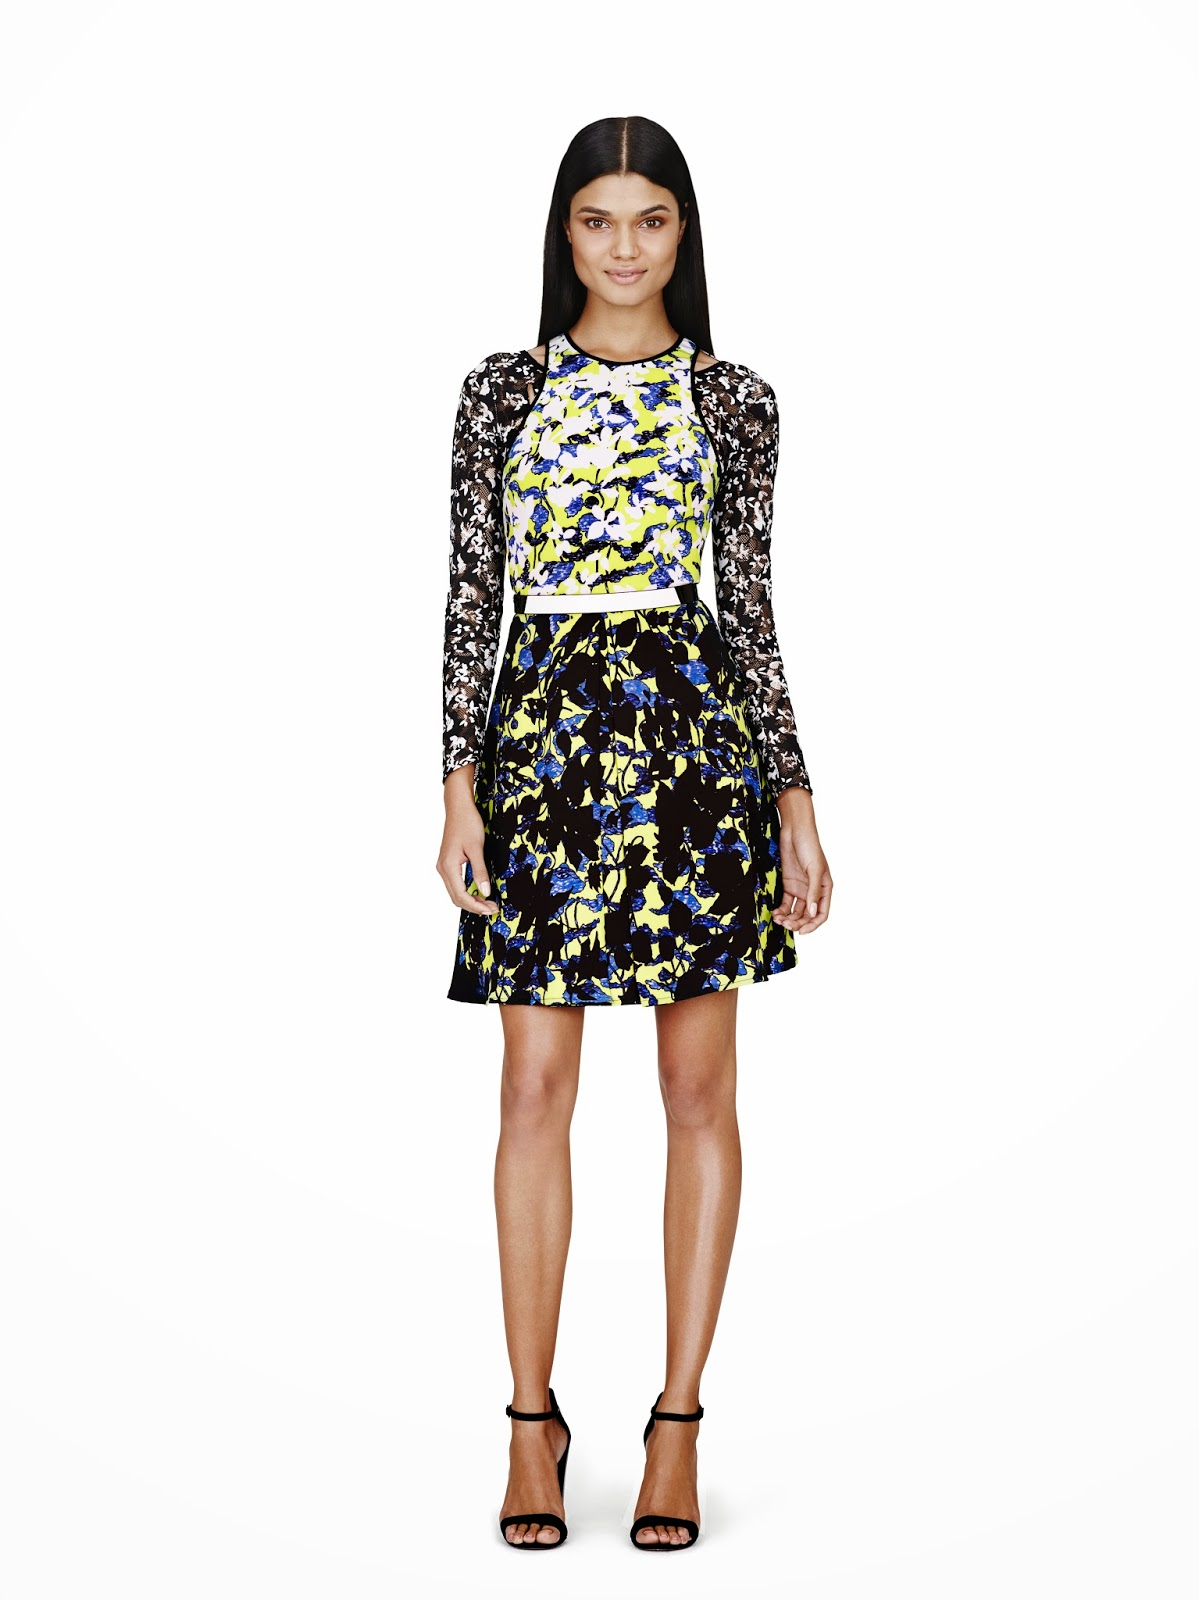 Peter-Pilotto-Target, Floral-dress-shirt, yellow-black, Spring-Summer-2014